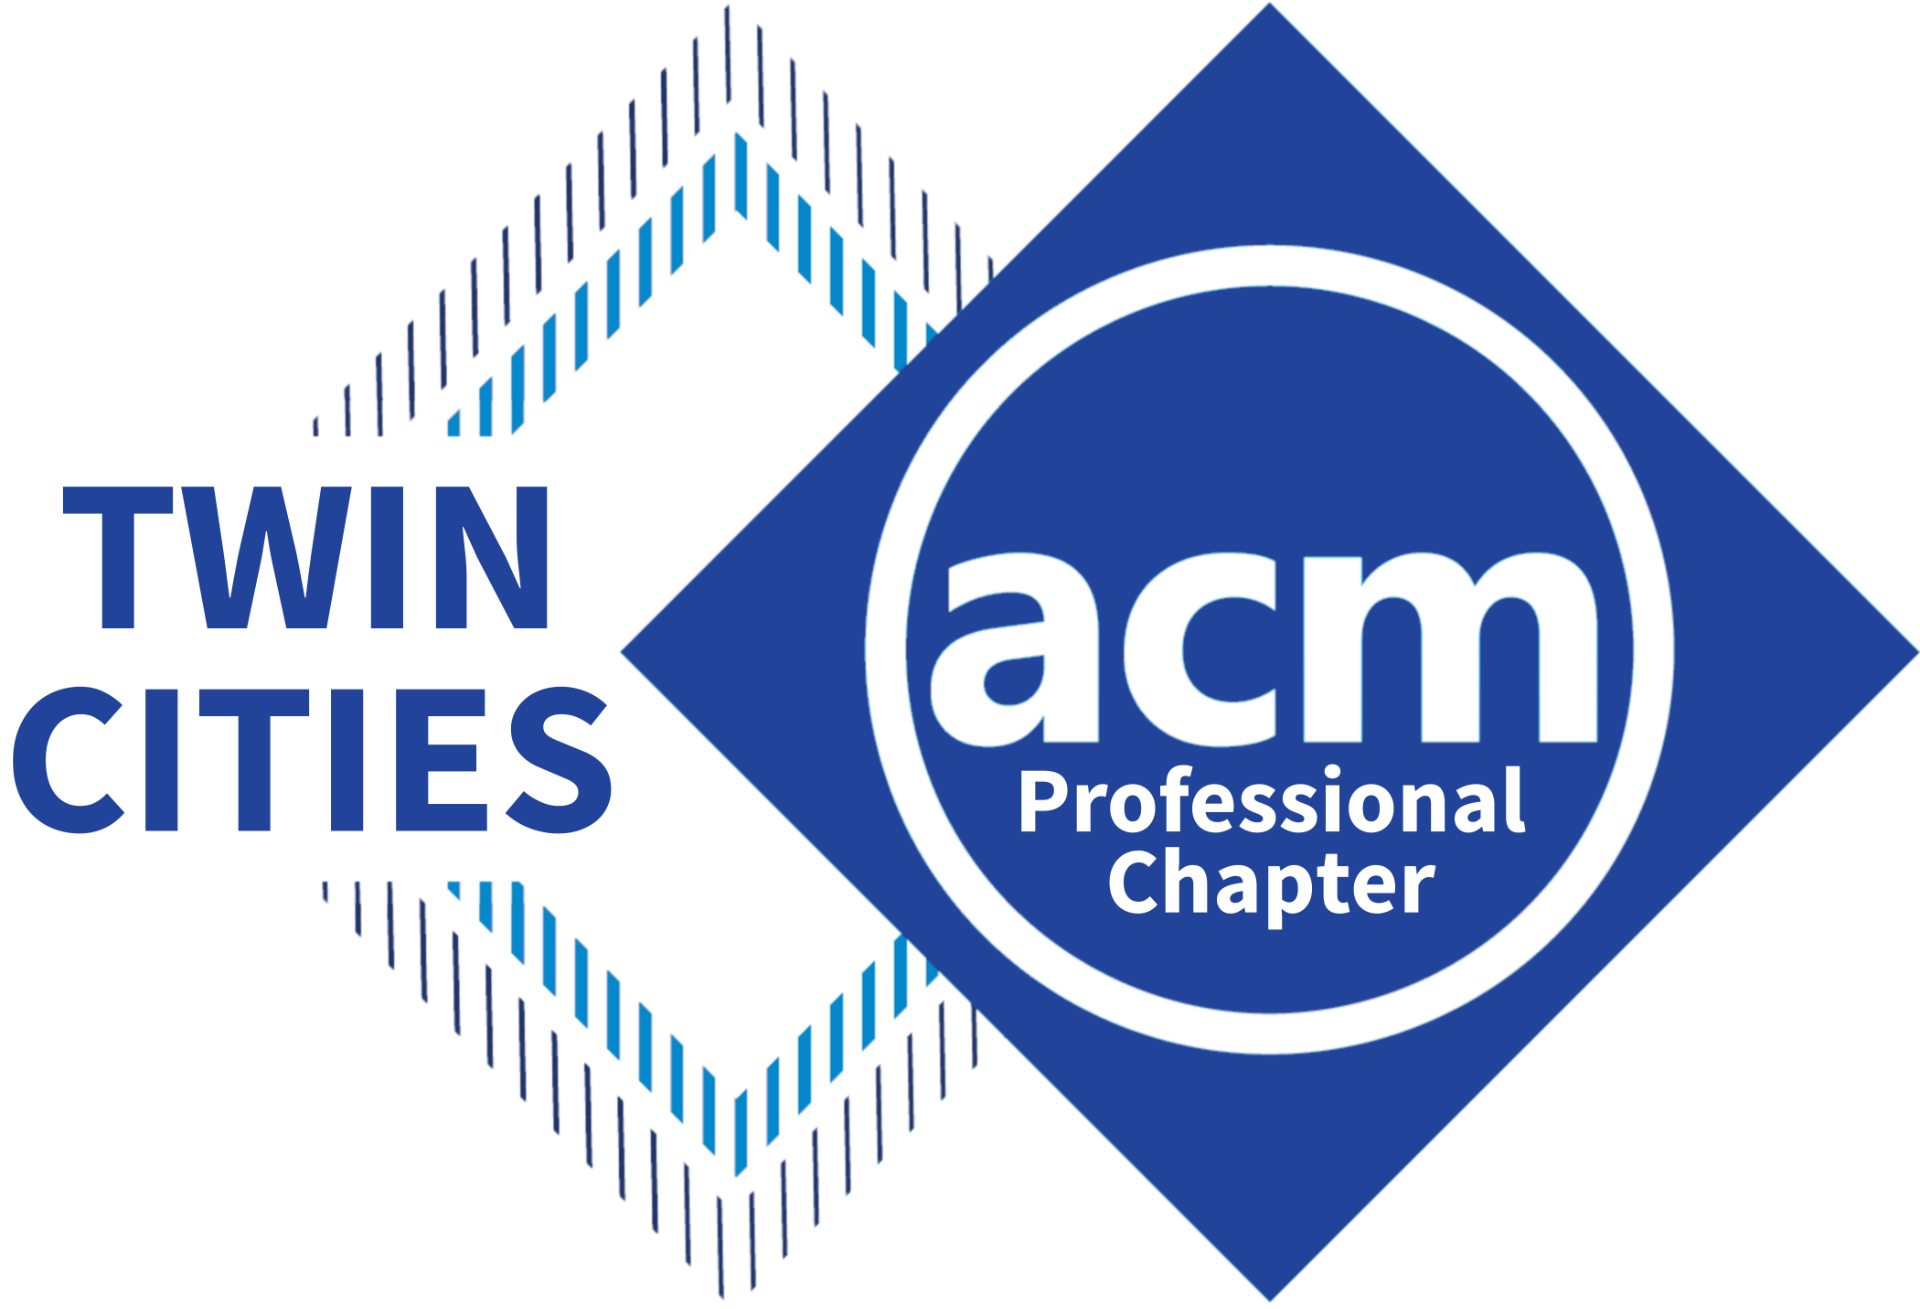 Twin Cities ACM Chapter